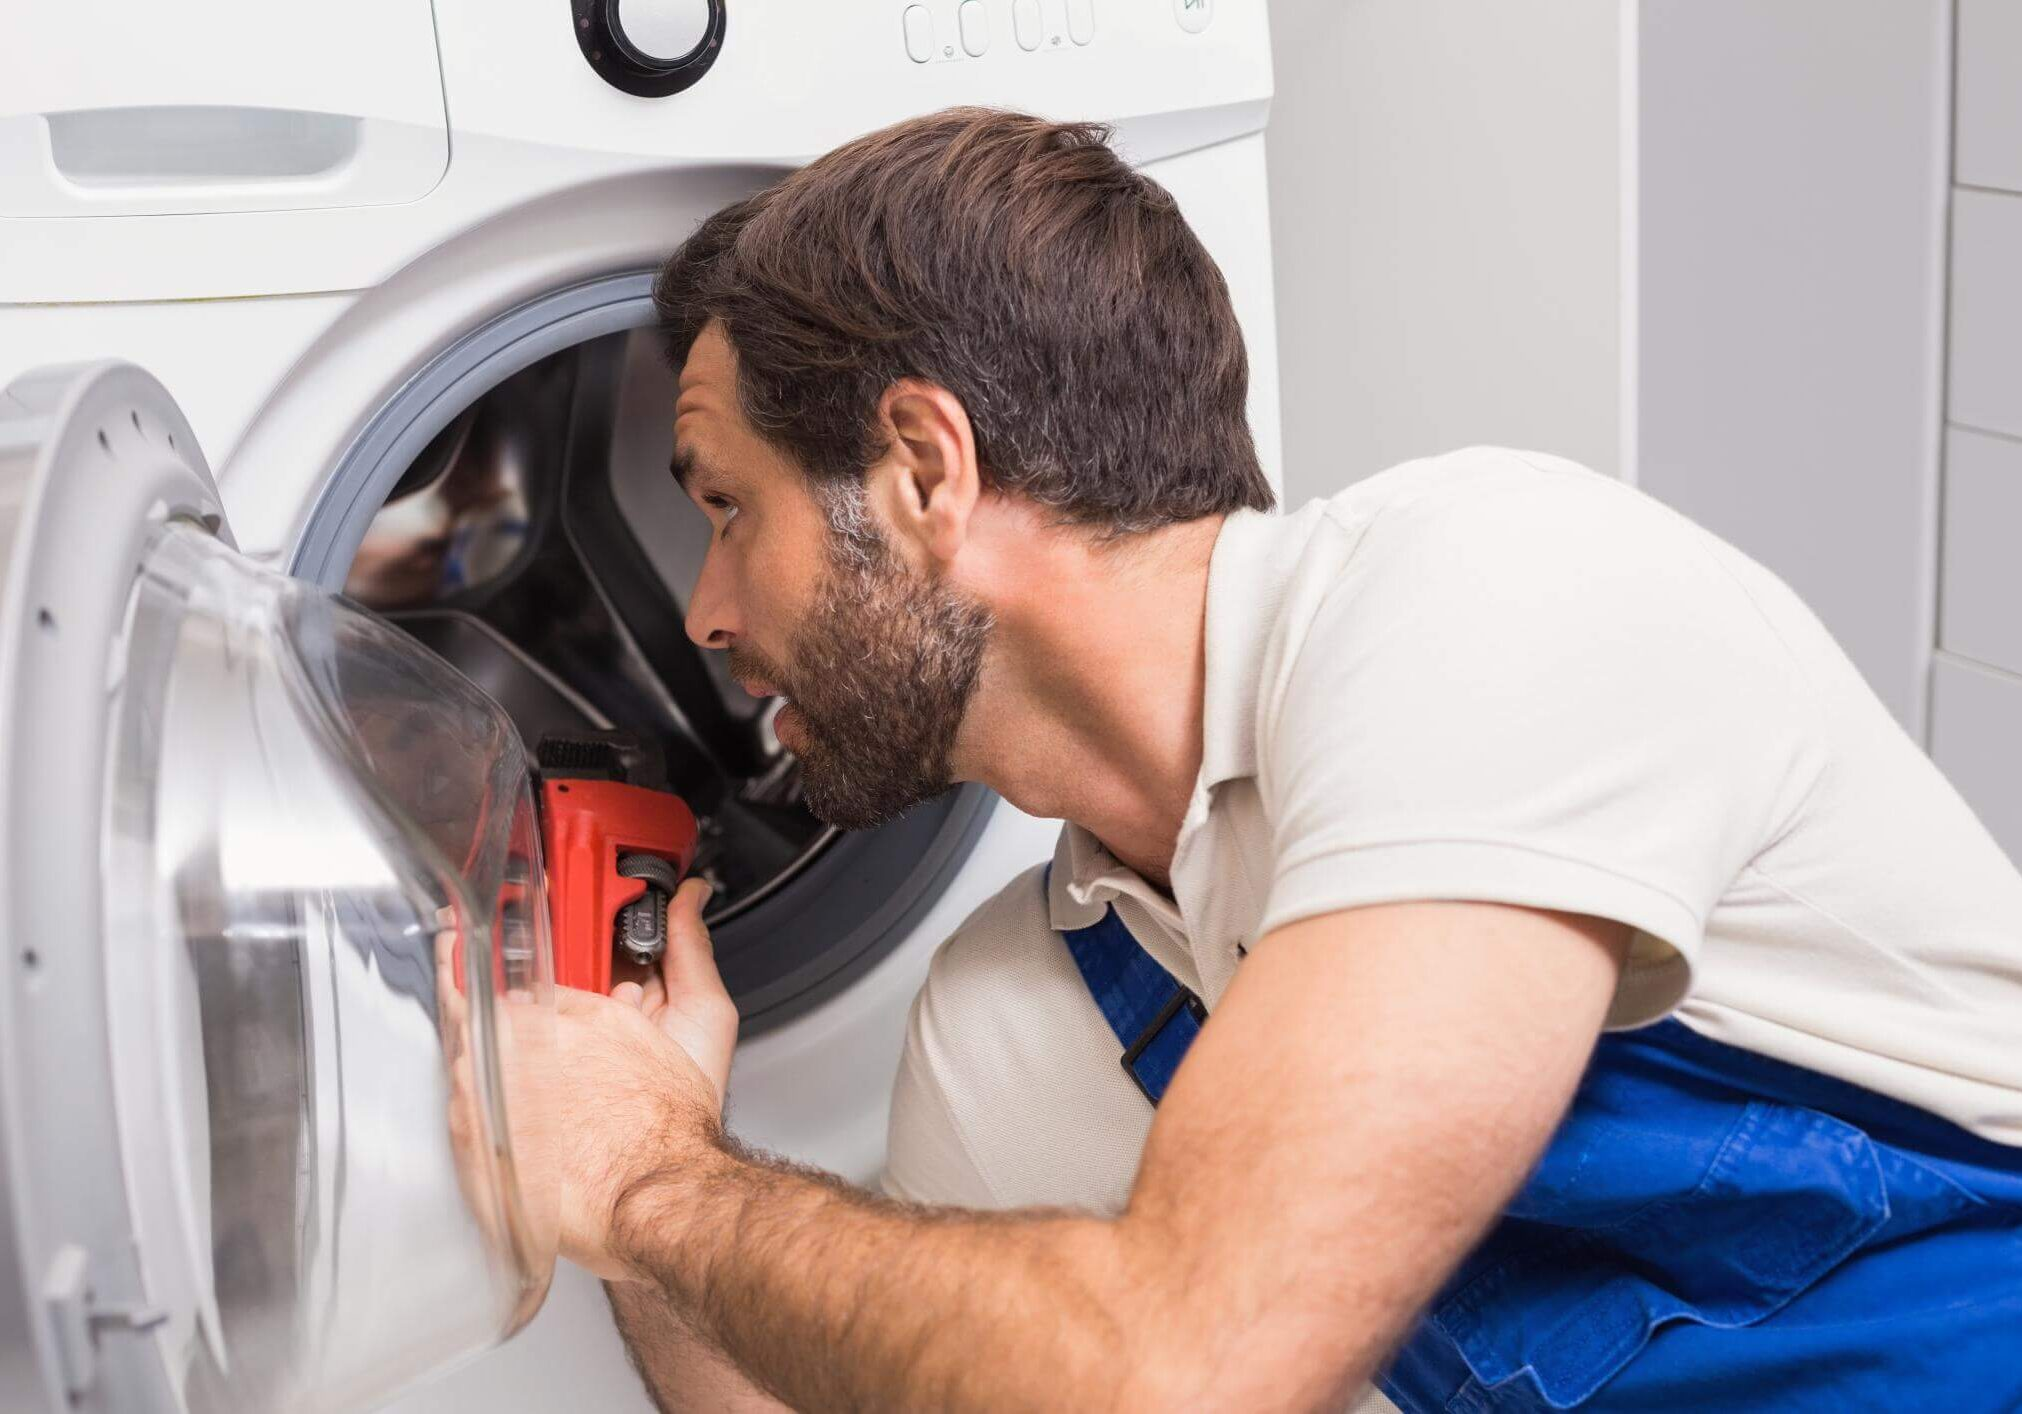 Male technician in blue coveralls and a white shirt, looking inside a washing machine whilst holding a pipe wrench